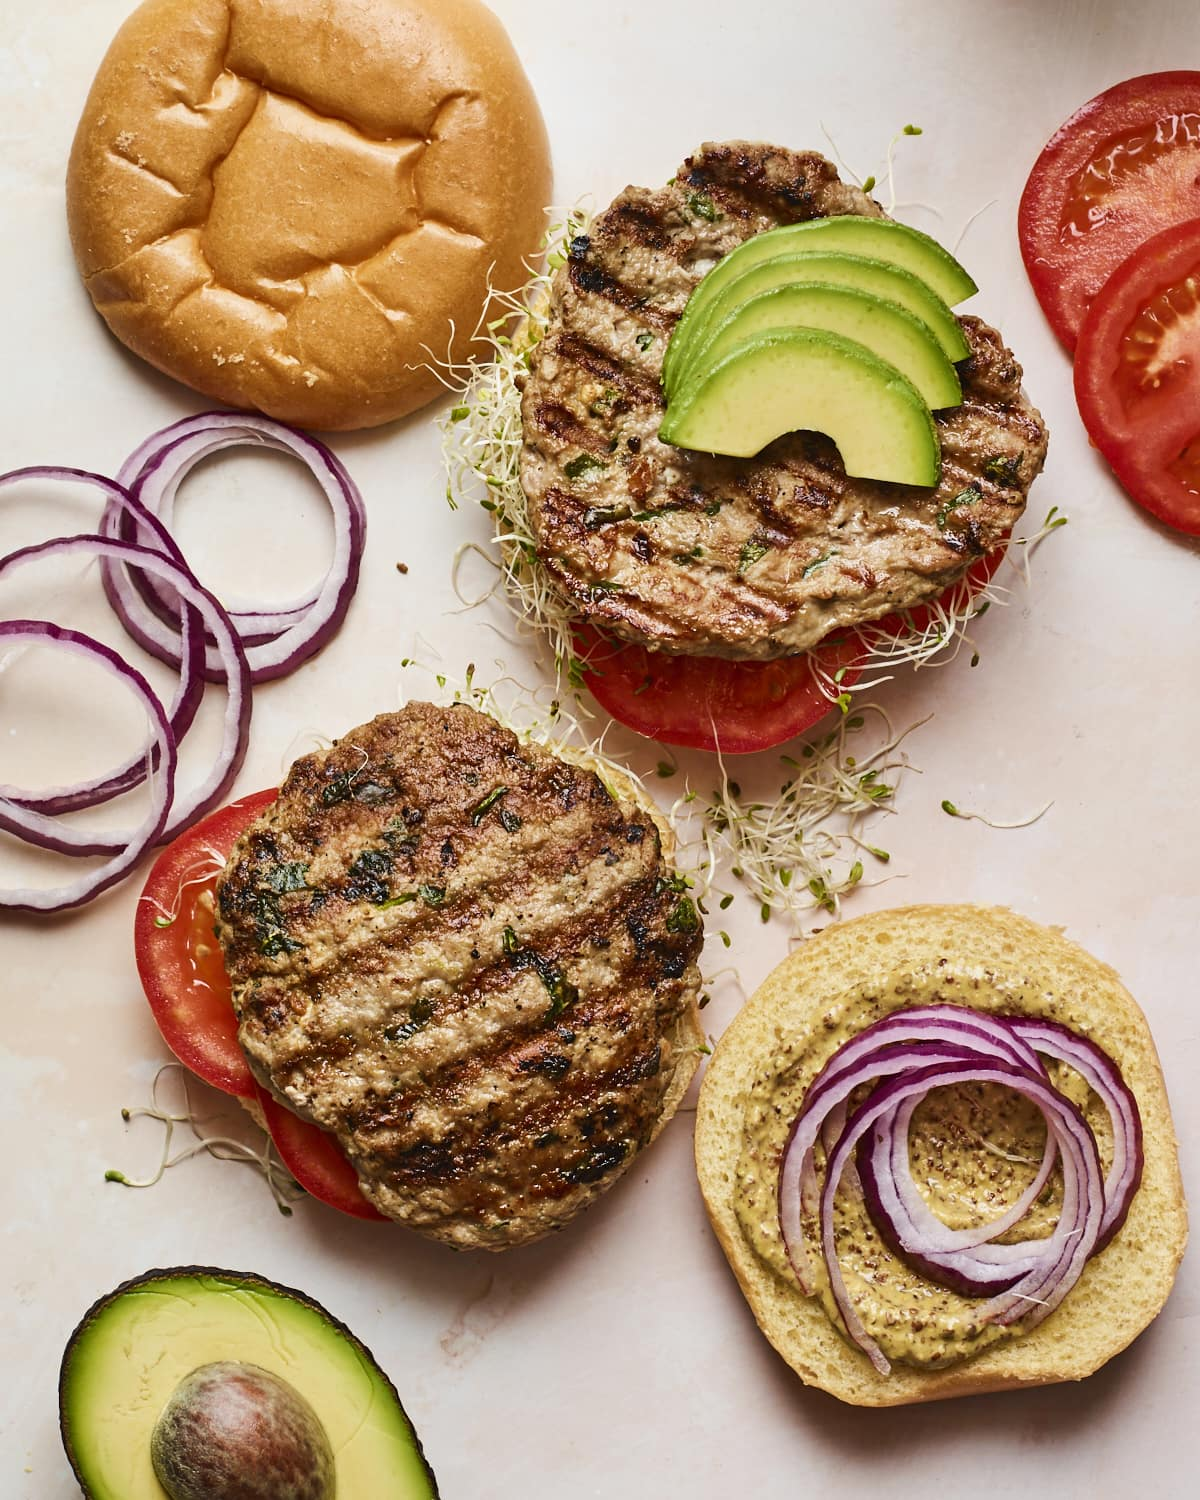 Two open faced spinach and feta turkey burgers with burger toppings and buns around on the table.